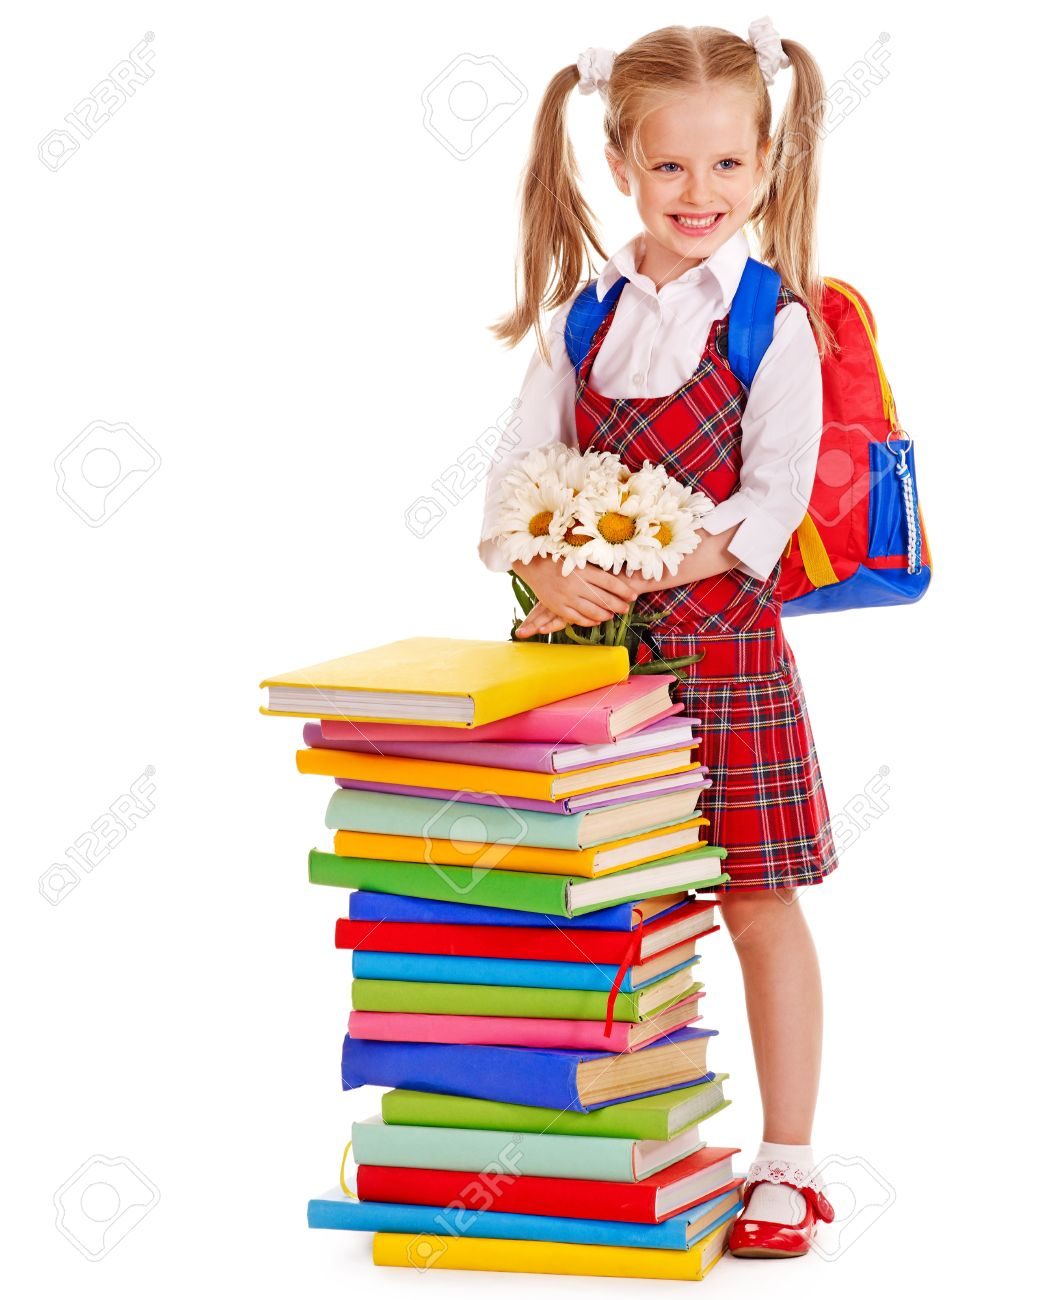 Happy child with backpack holding book. Isolated. Stock Photo - 14741539 e1a1dedfd2779